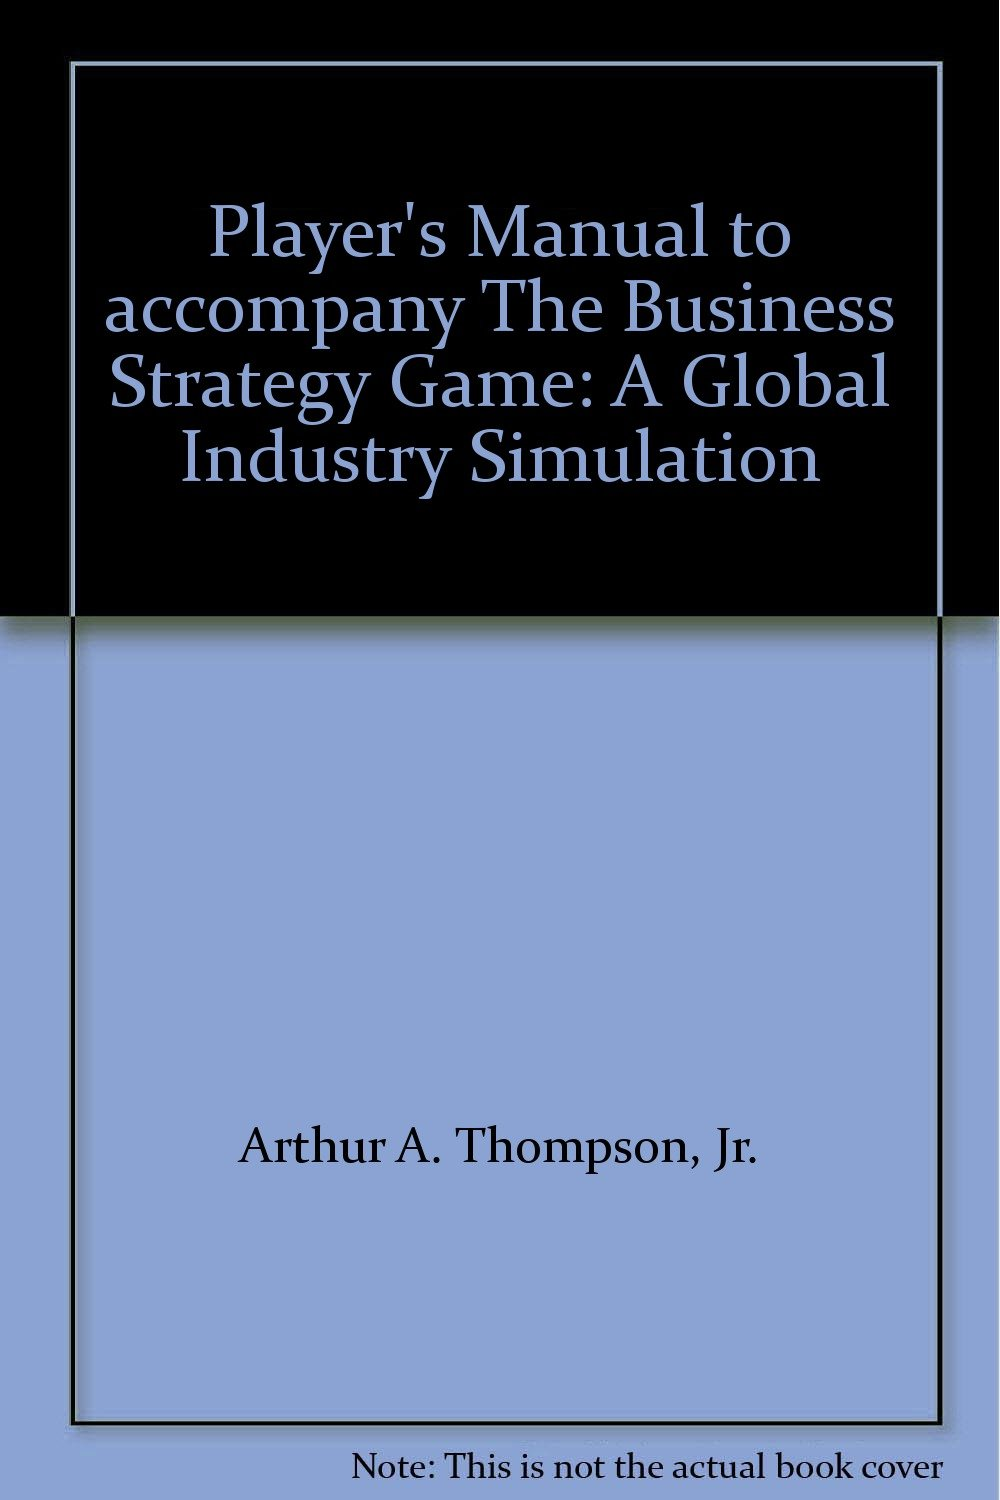 Player's Manual to accompany The Business Strategy Game: A Global Industry  Simulation: Jr. Arthur A. Thompson, Gregory J. Stappenbeck: 9780072302158:  ...